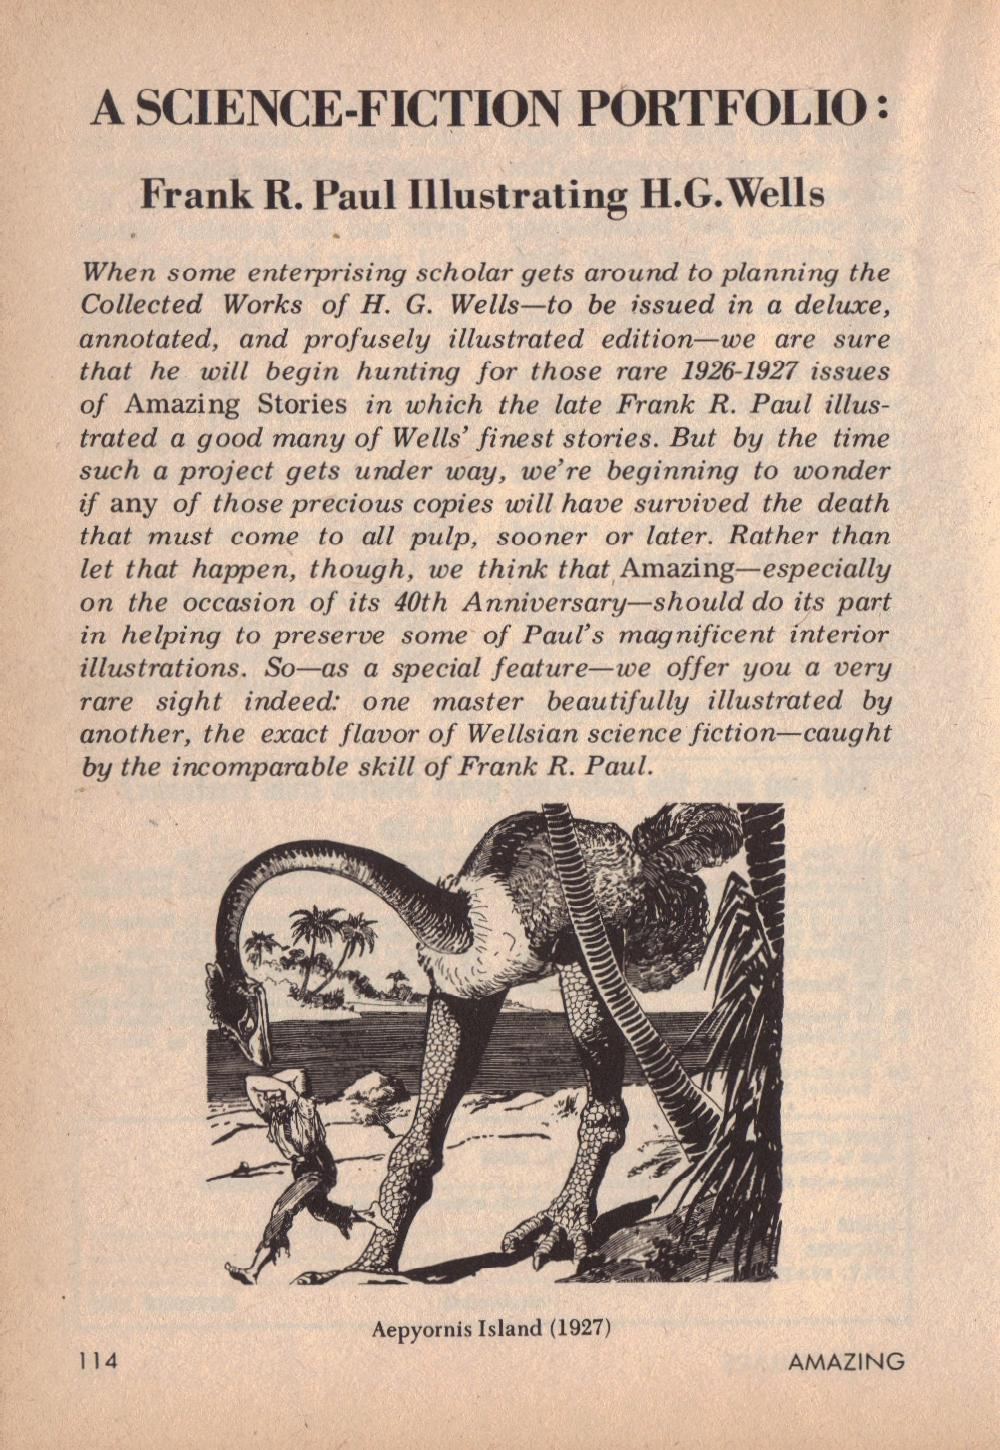 Frank R Paul - H.G. Wells Illustrations (Published in Amazing Stories,April 1966, page 114